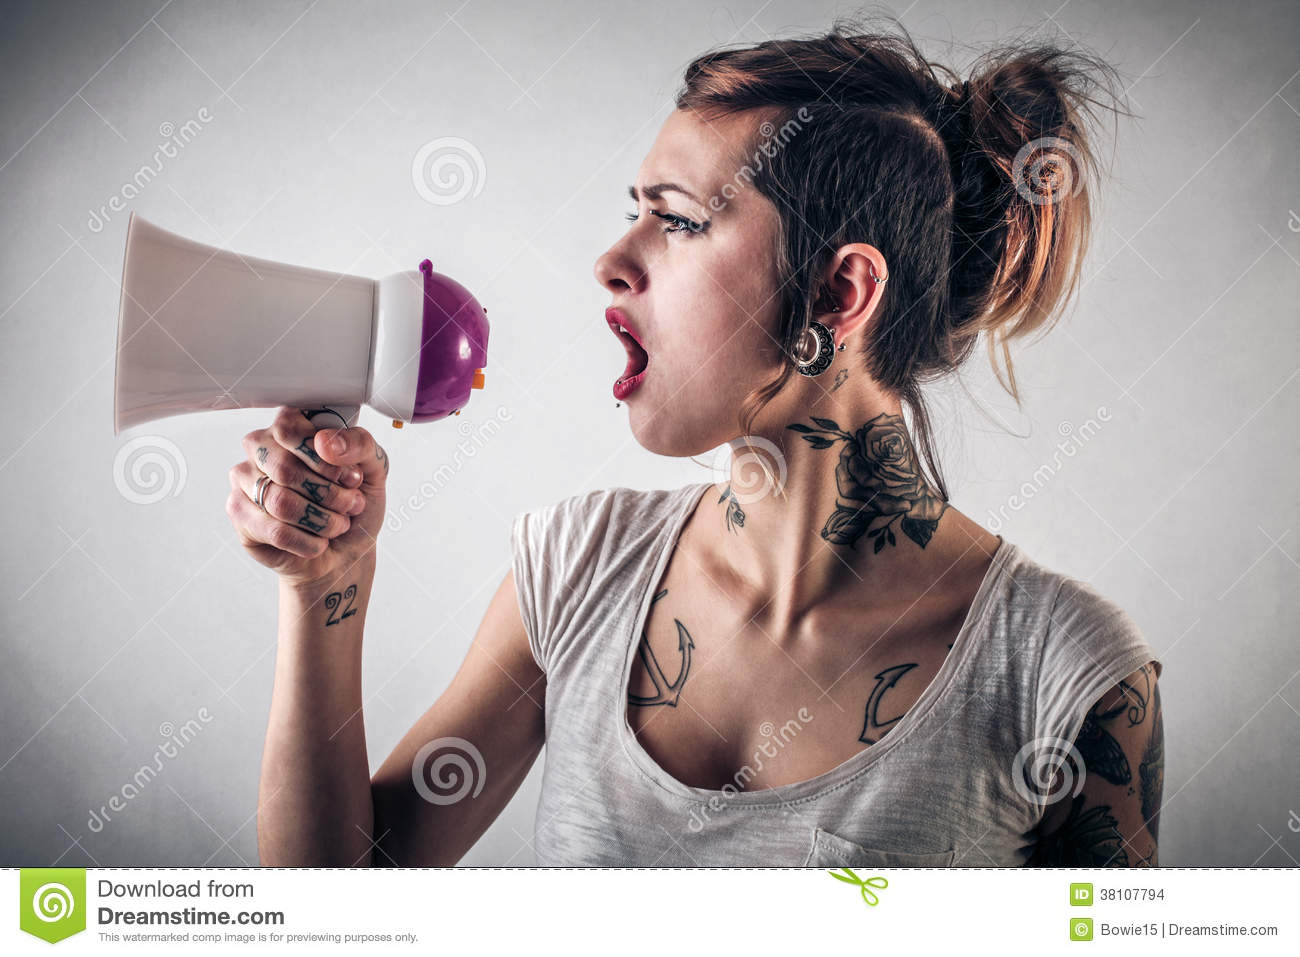 Woman with tattoos using a megaphone stock images image for Woman with tattoos